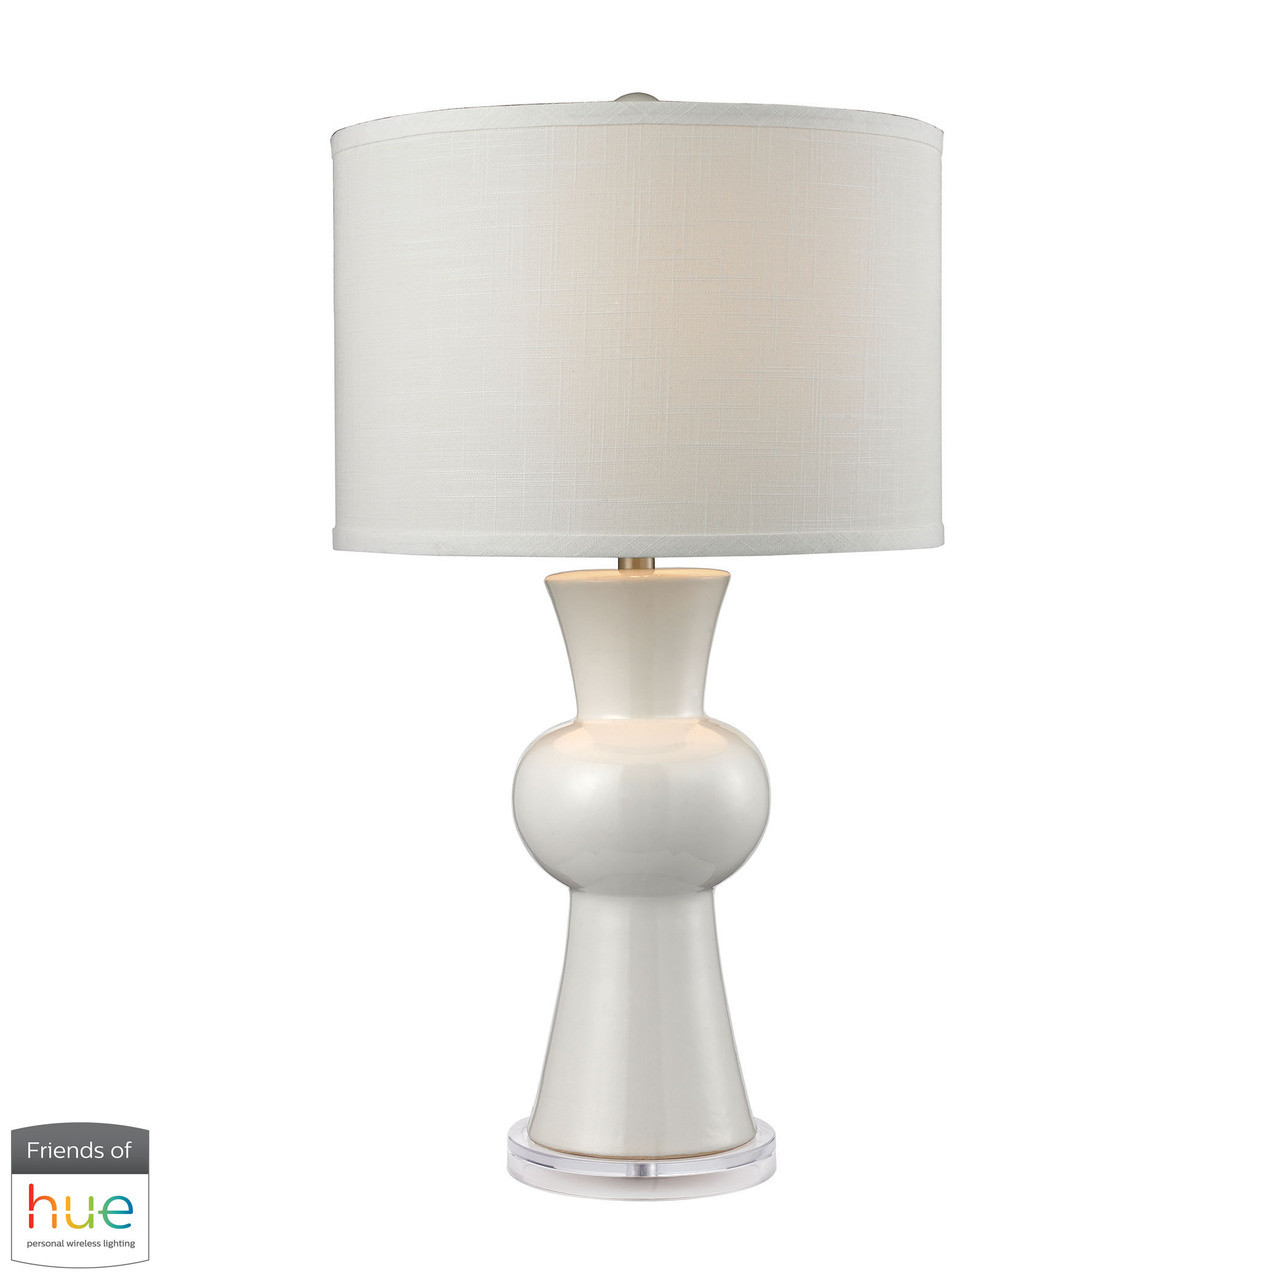 Dimond Lighting D2618 Hue D White Ceramic Table Lamp With Textured White Linen Hardback Shade With Philips Hue Led Bulb Dimmer